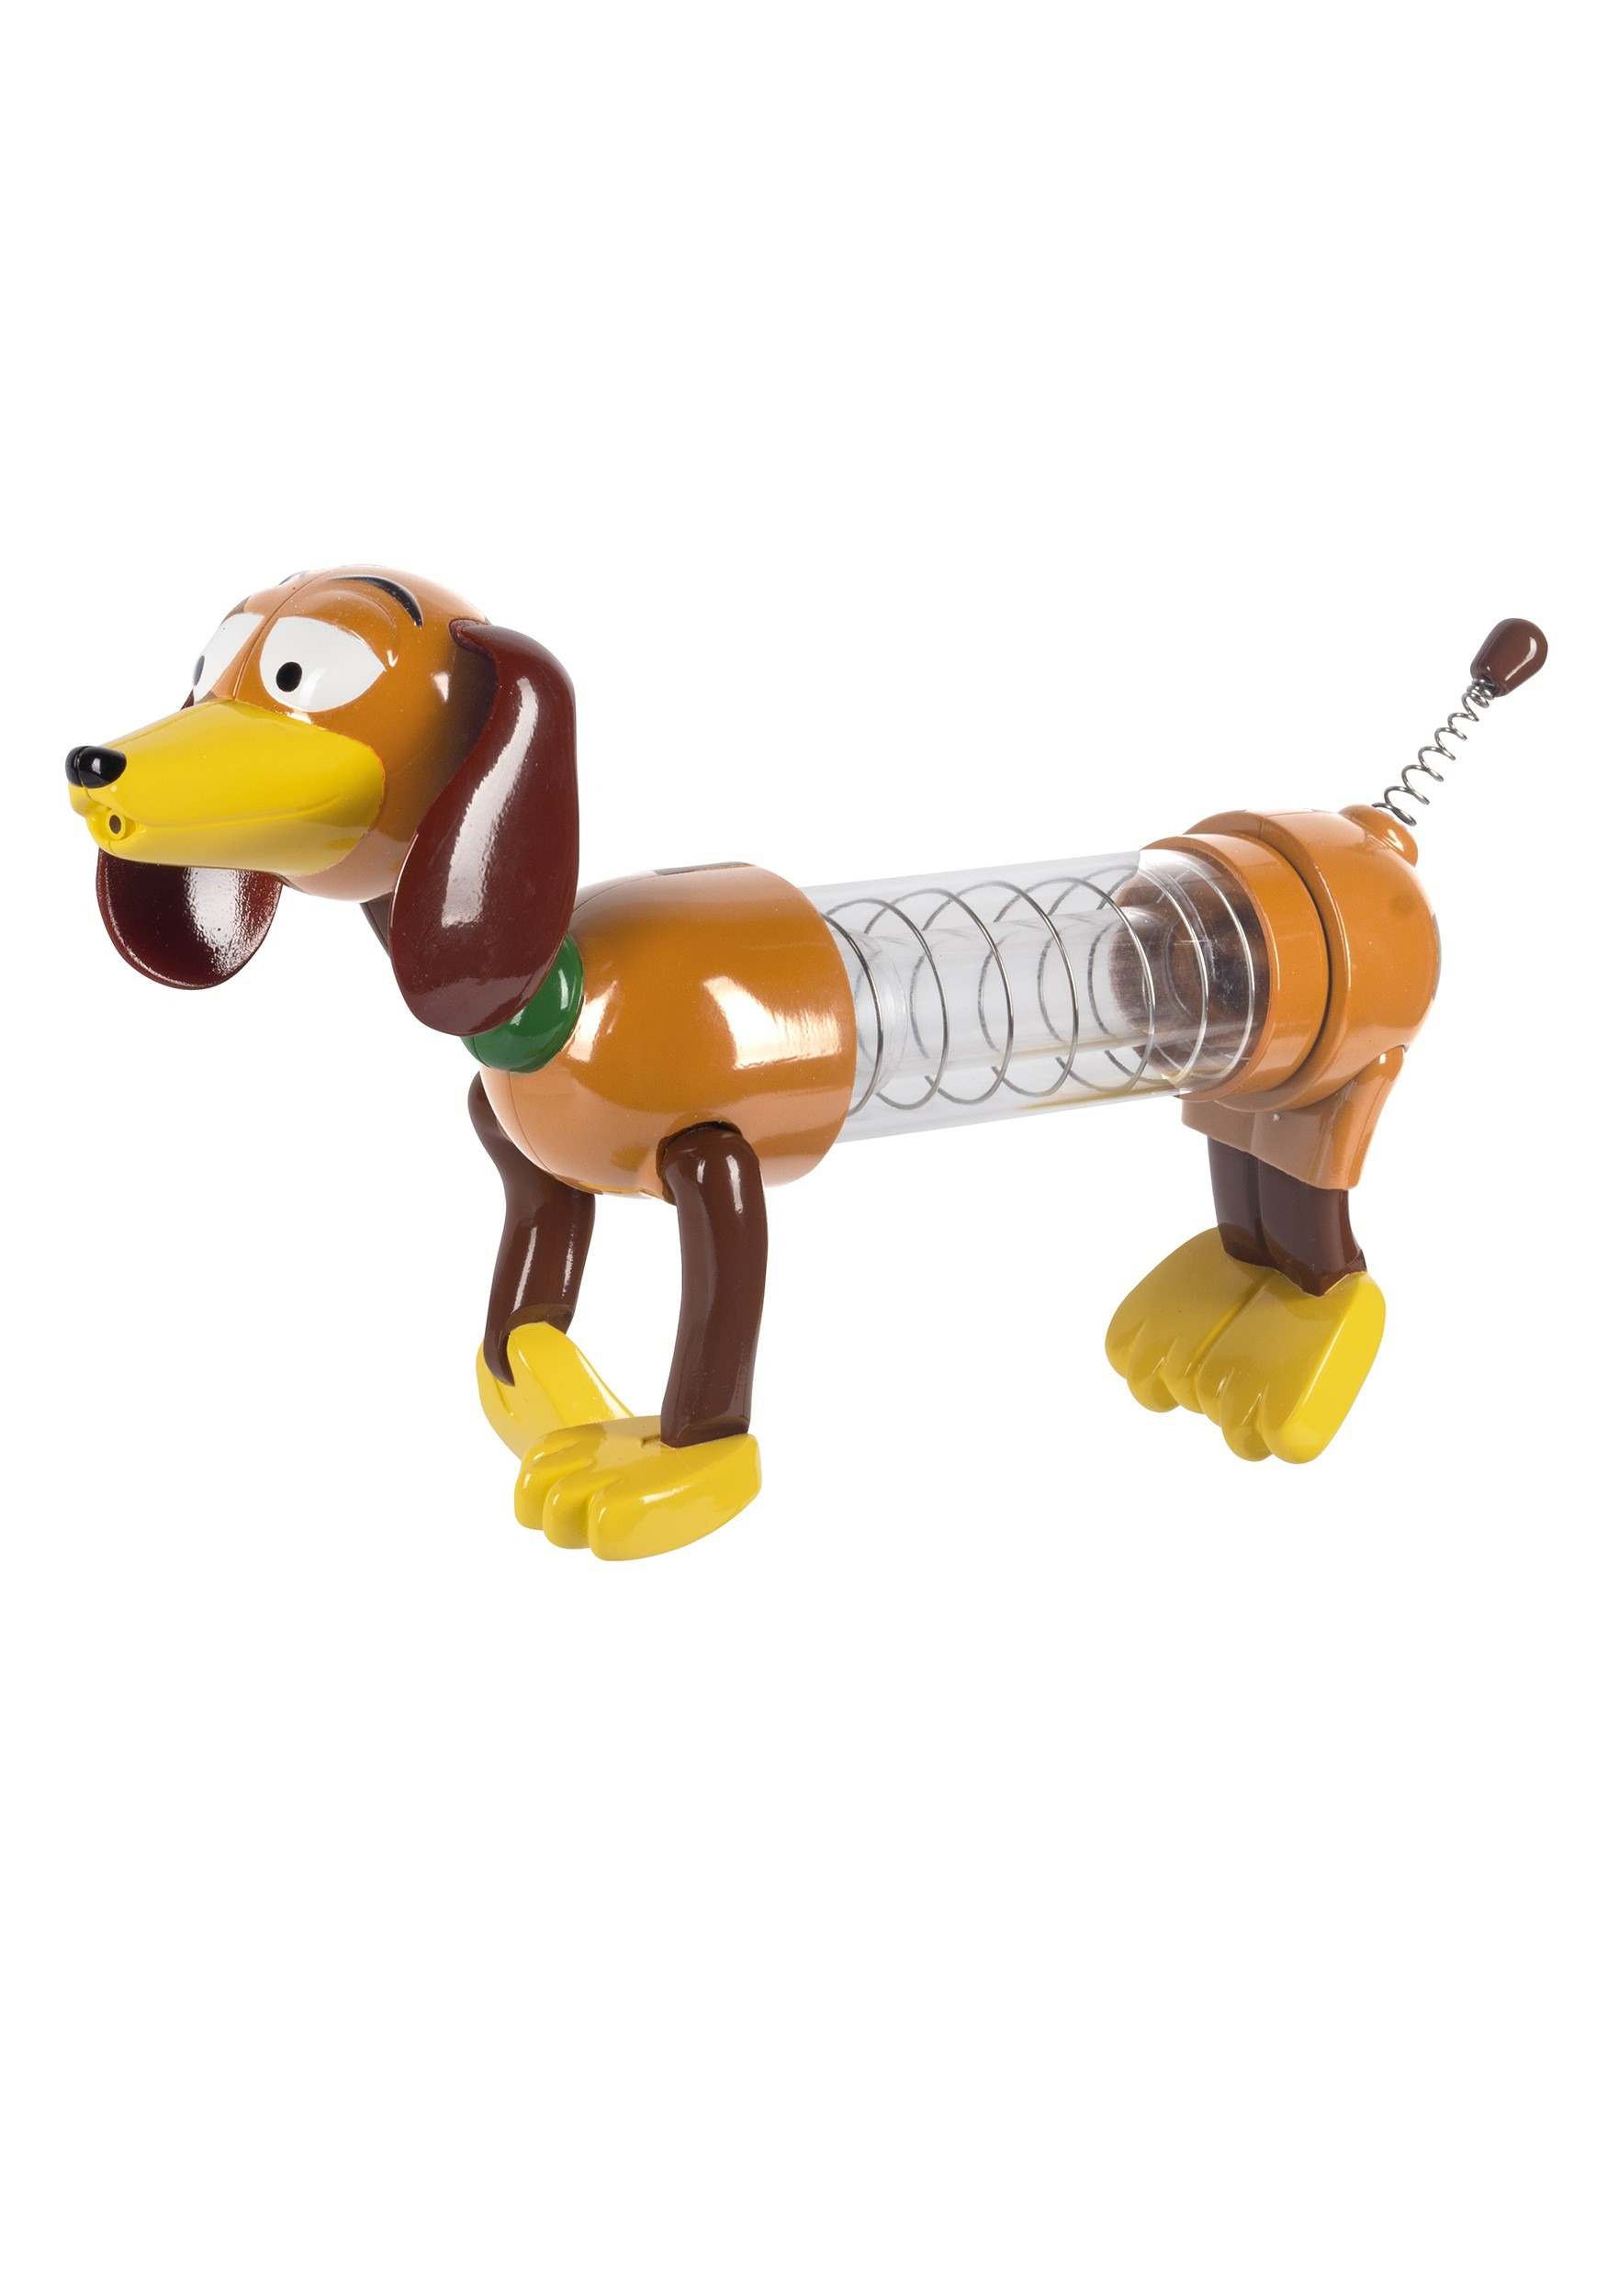 The Toy Story 4 Slinky Dog Water Shooter